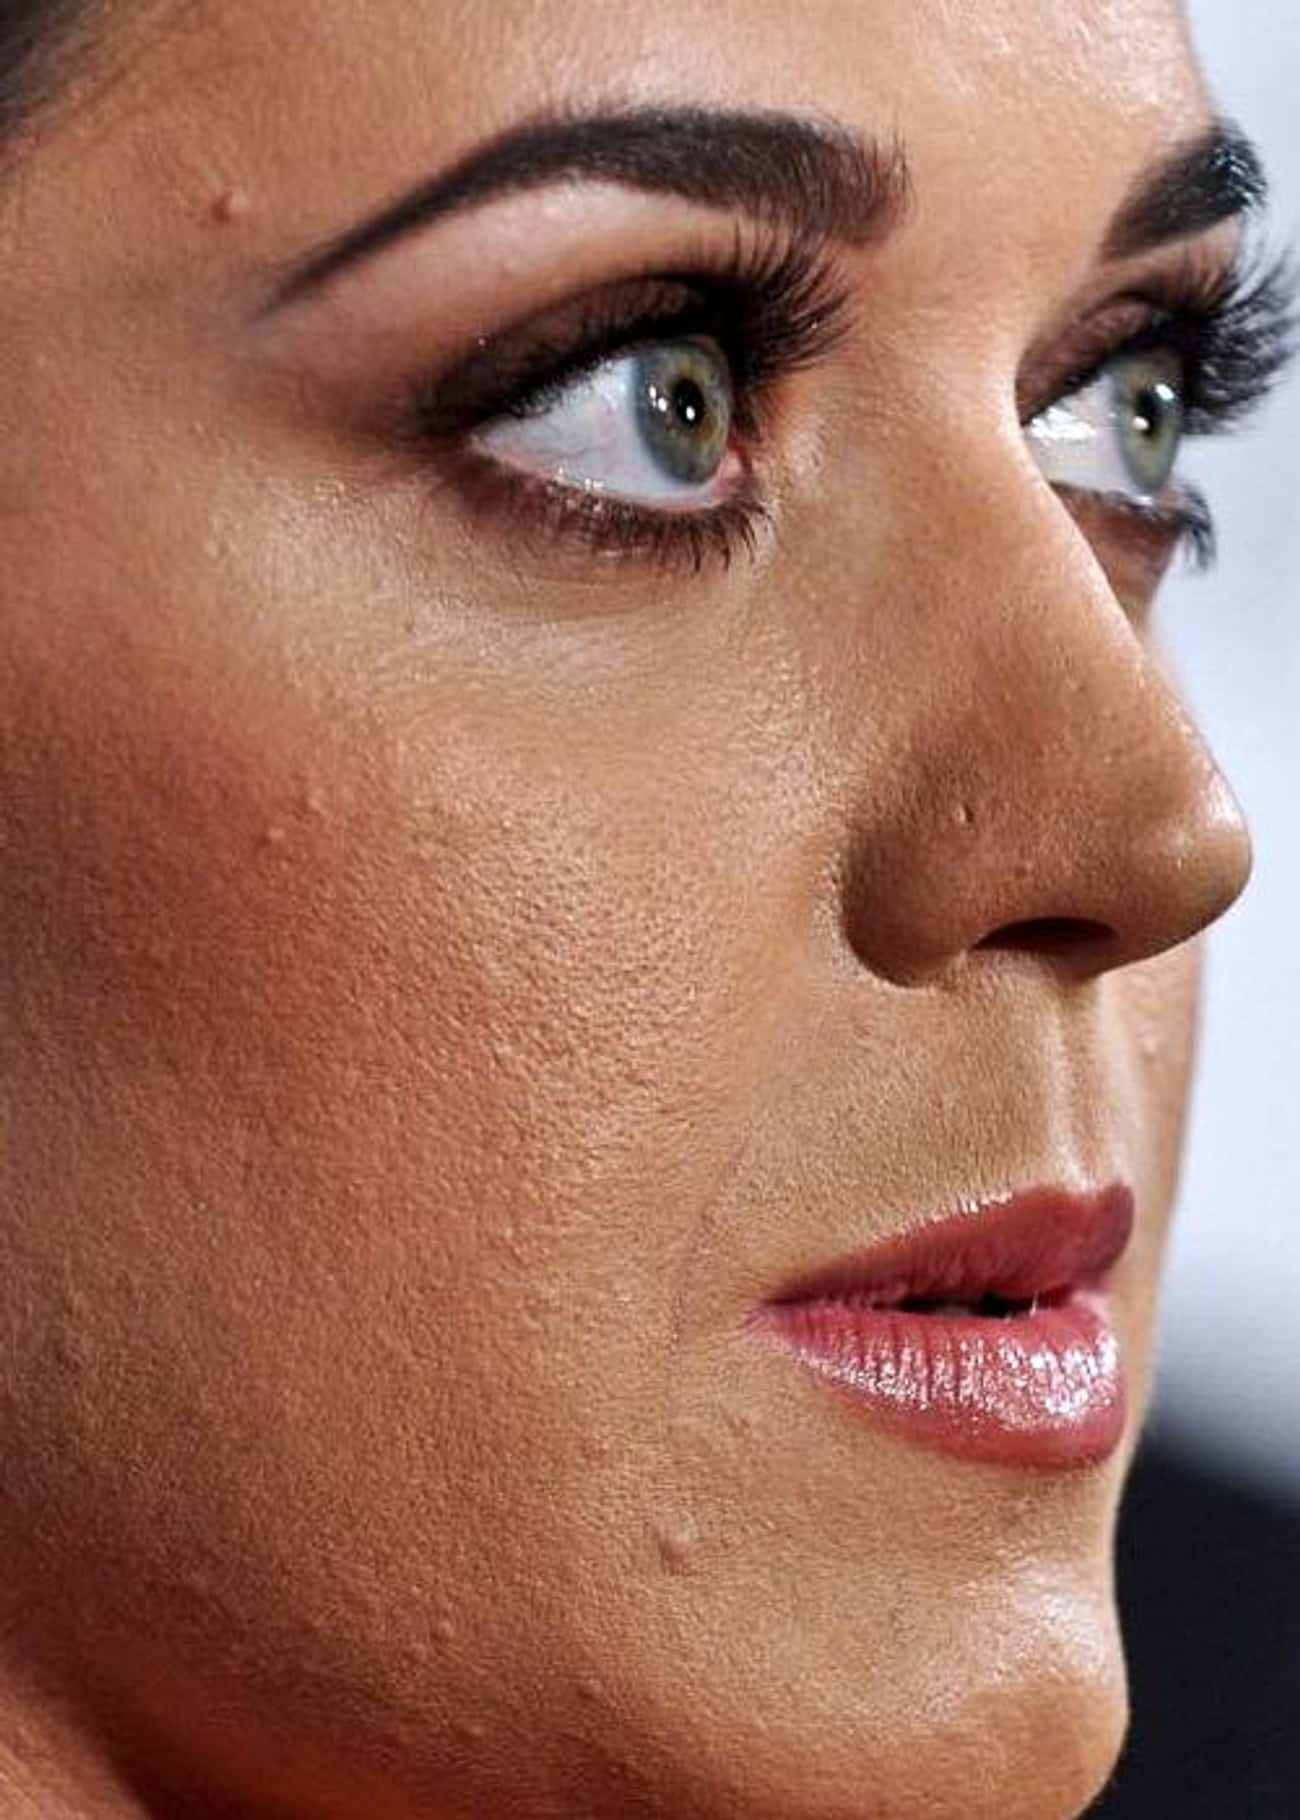 Katy Perry is listed (or ranked) 4 on the list 52 Celebrities Who Have Acne